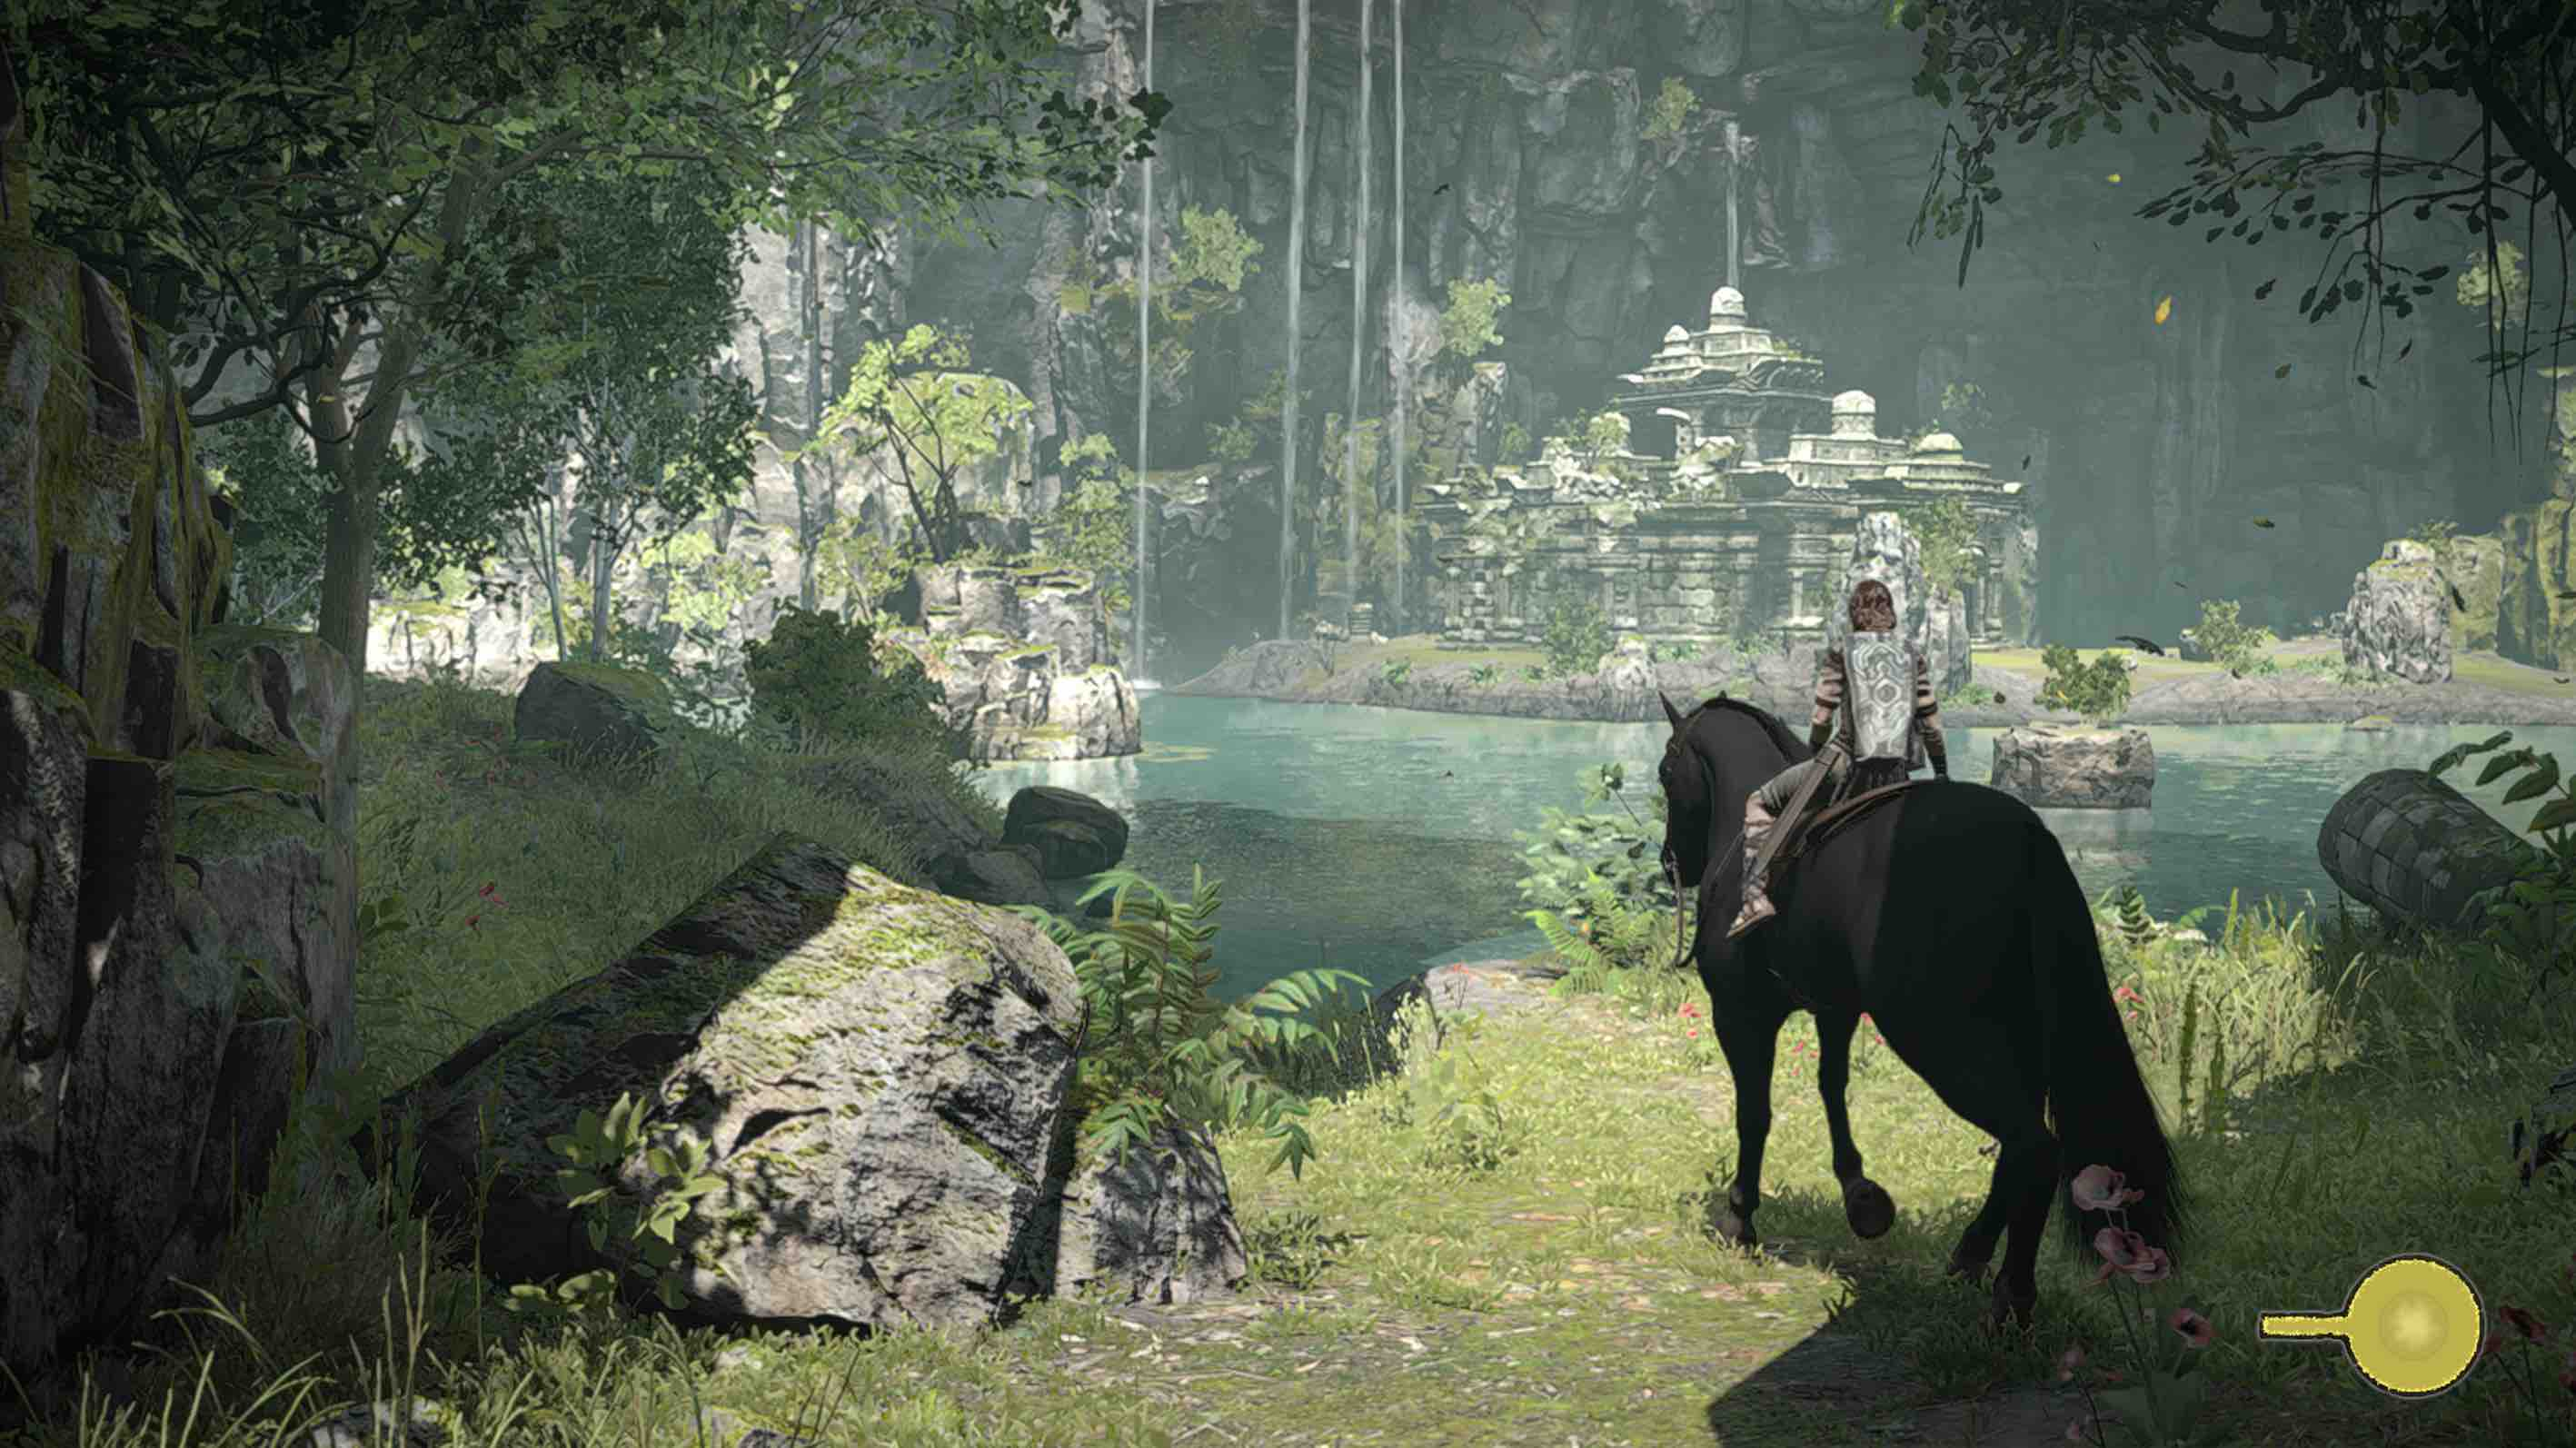 Shadow_of_the_Colossus_Avance_8